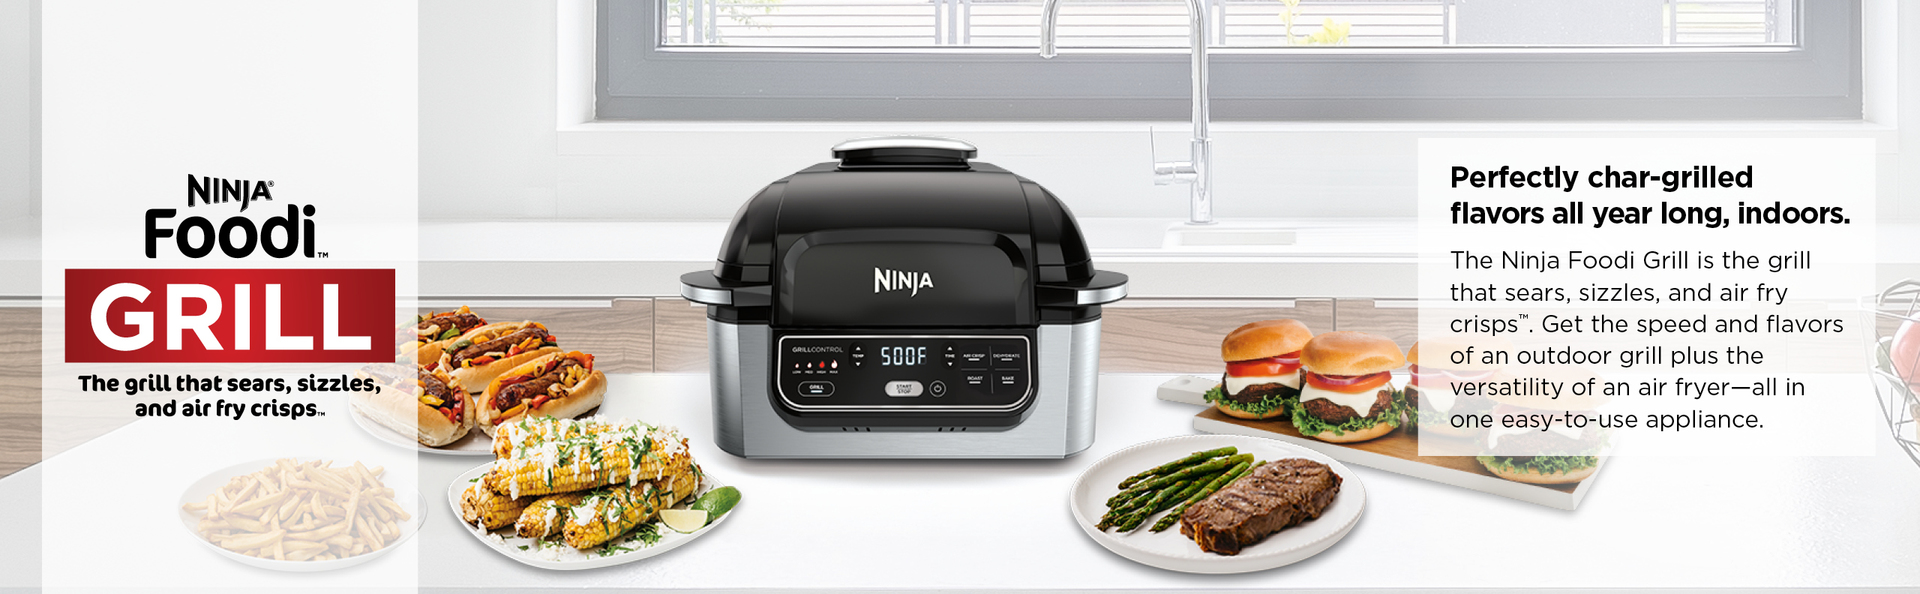 air fryer ninja foodi grill accessories